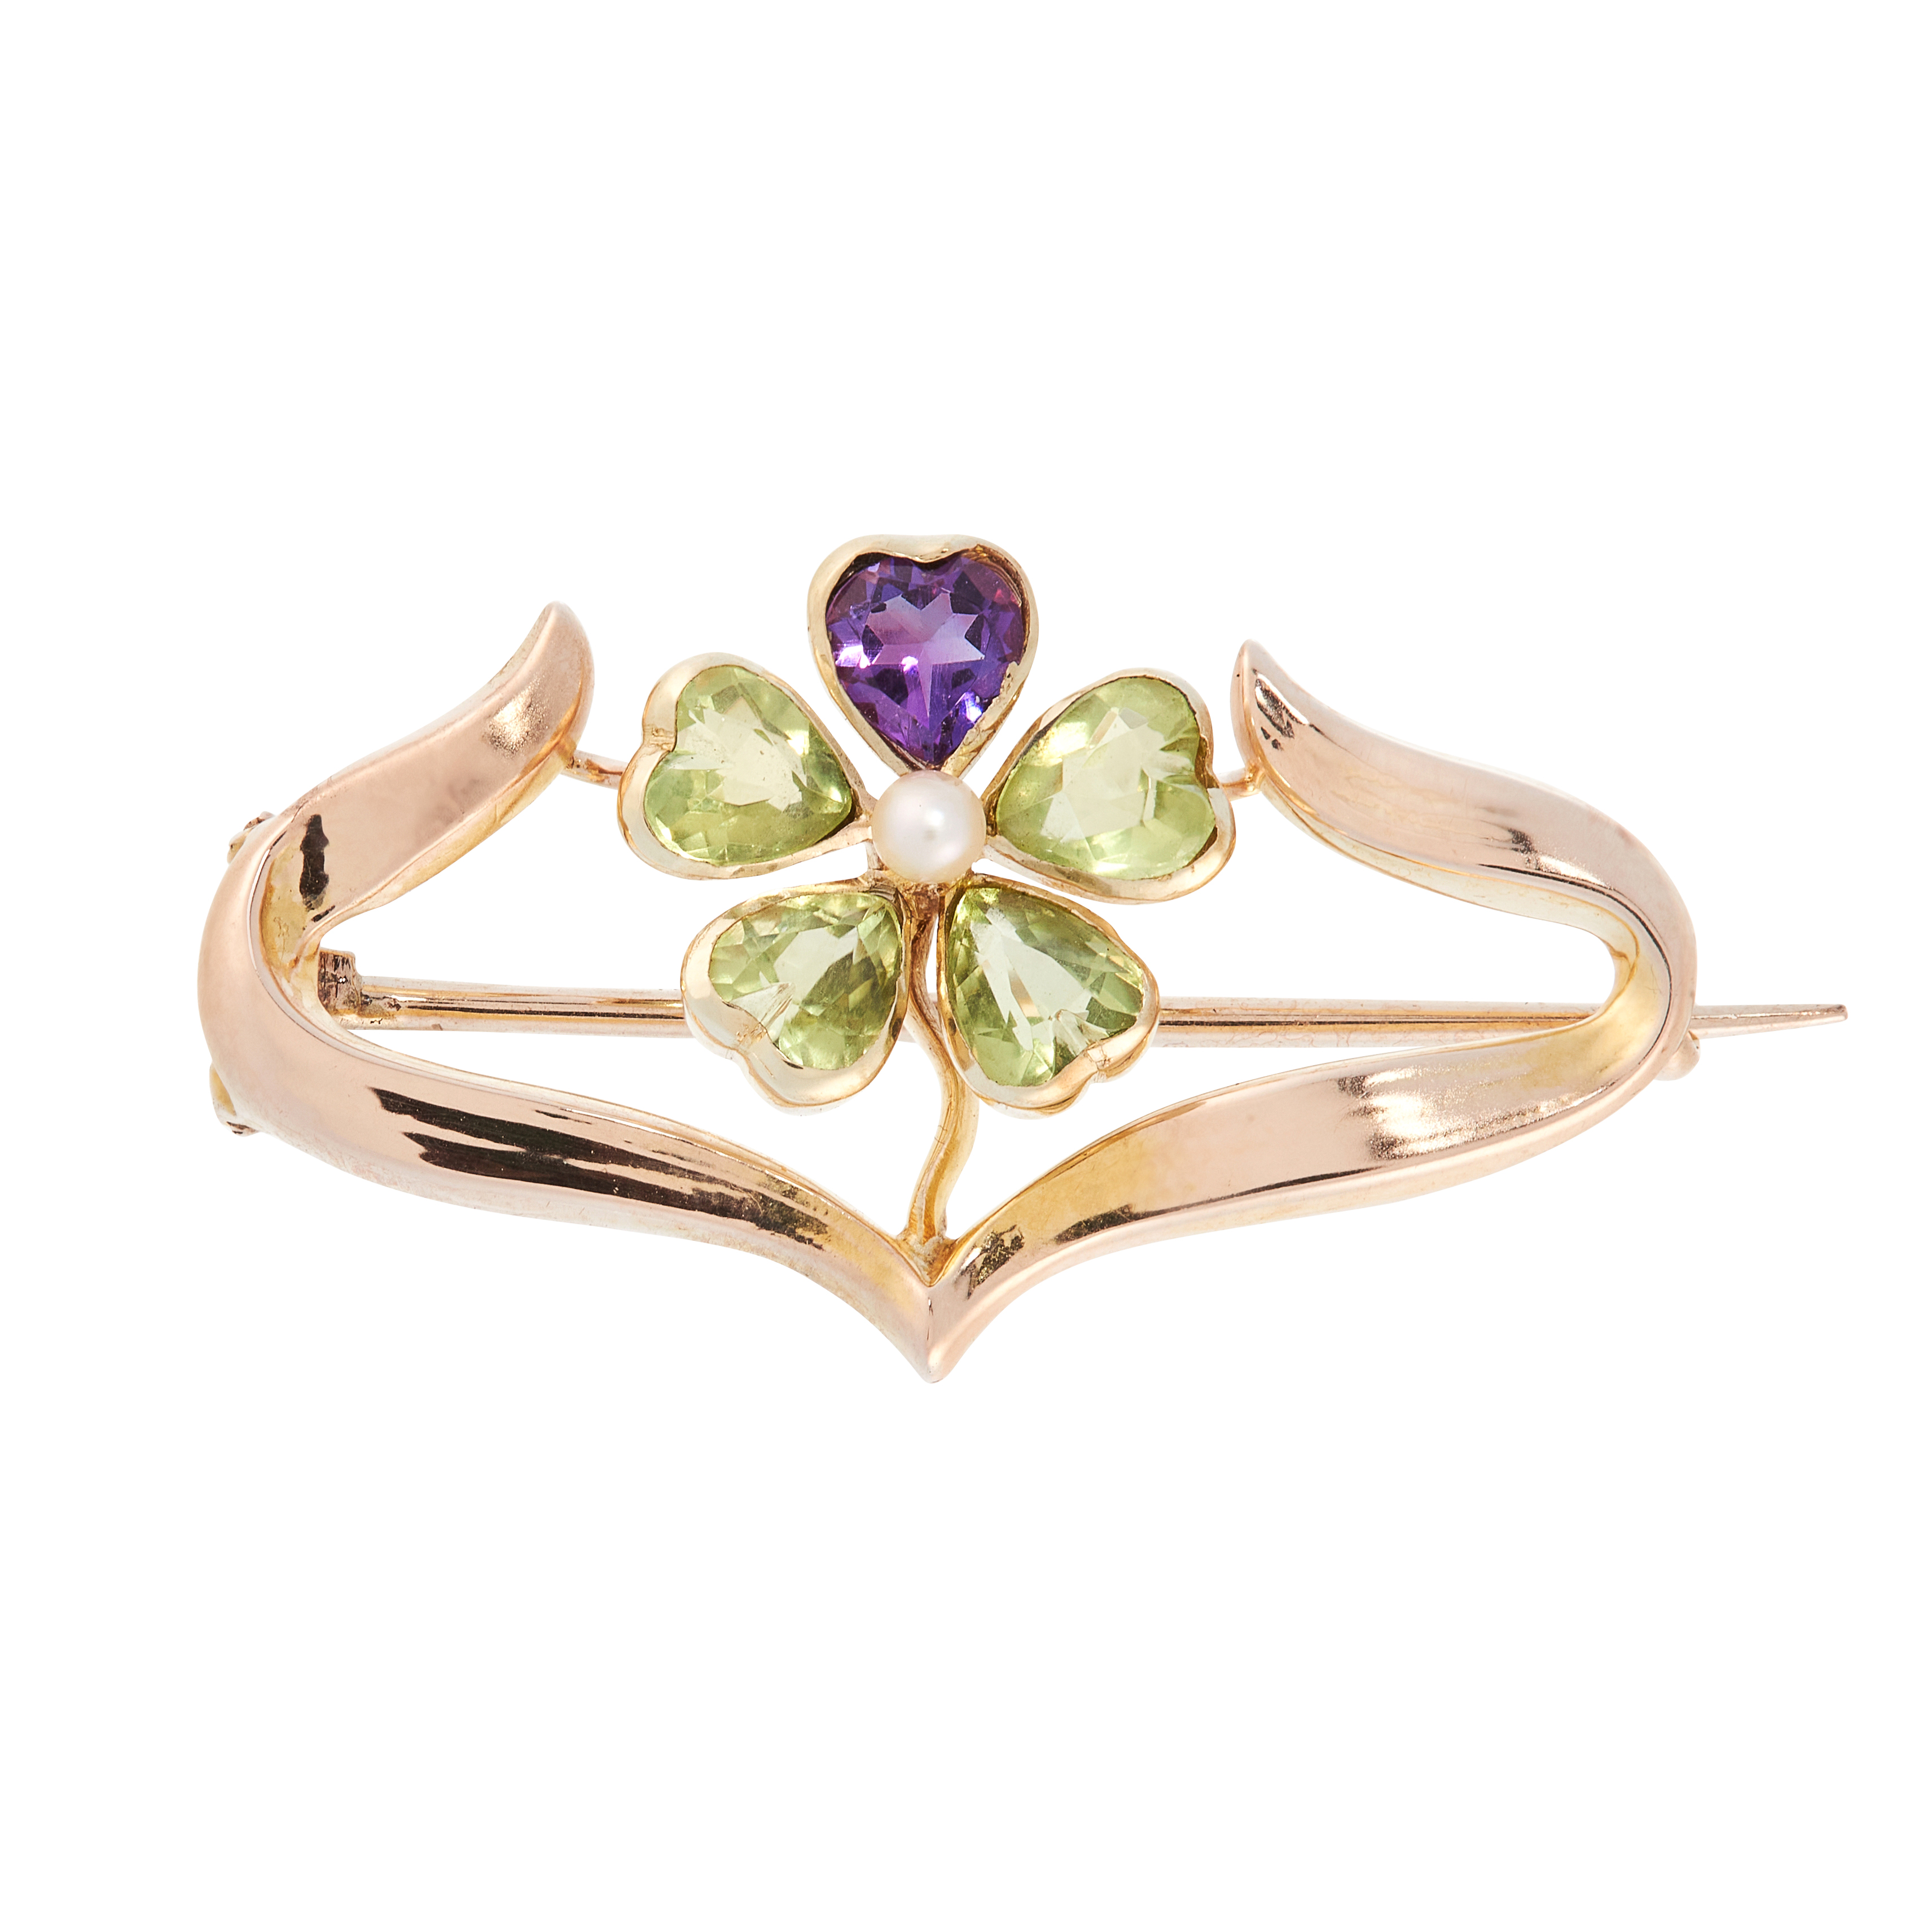 AN ANTIQUE PERIDOT, AMETHYST AND PEARL SUFFRAGETTE BROOCH, CIRCA 1900 in 15ct yellow gold,